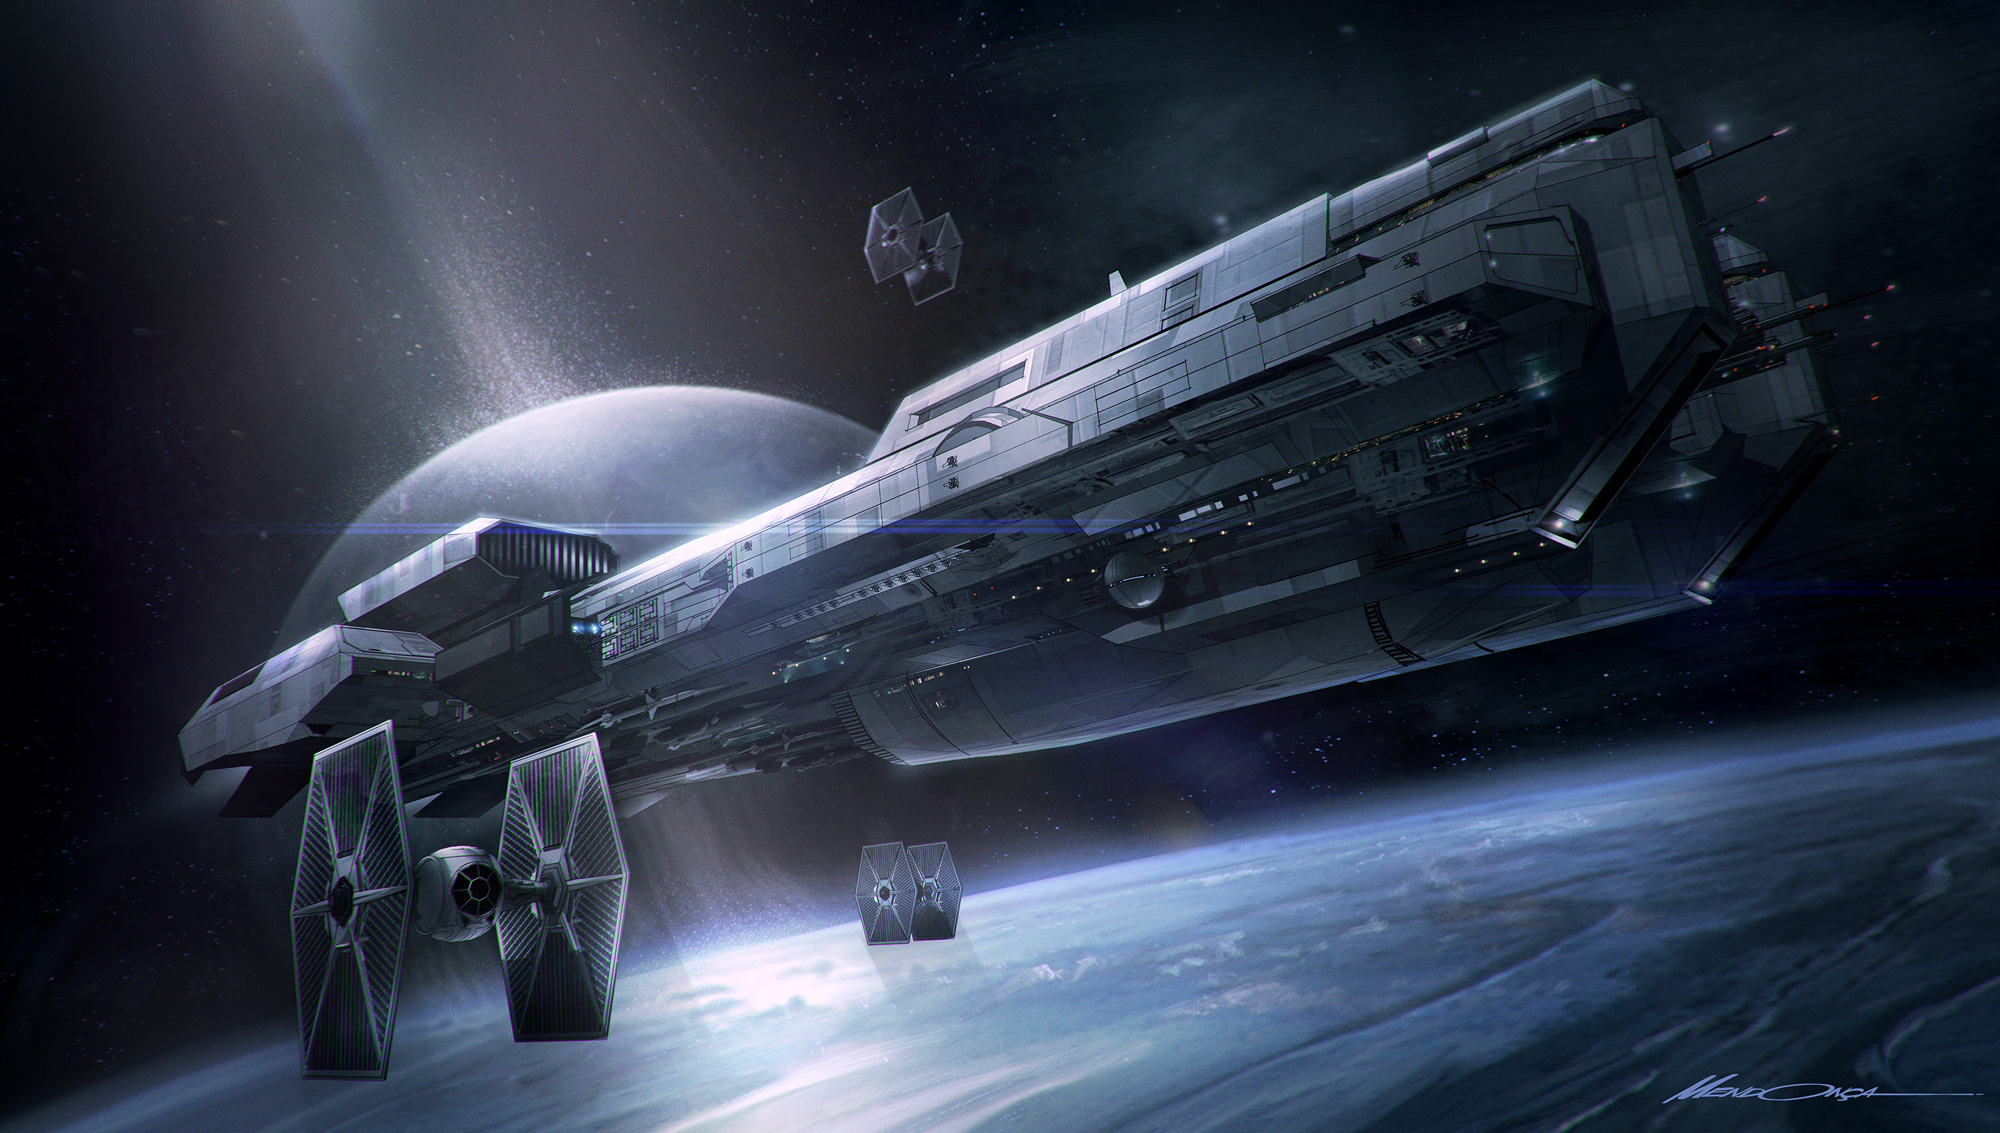 Star Wars Concept Art and Illustrations by Gustavo Mendonca